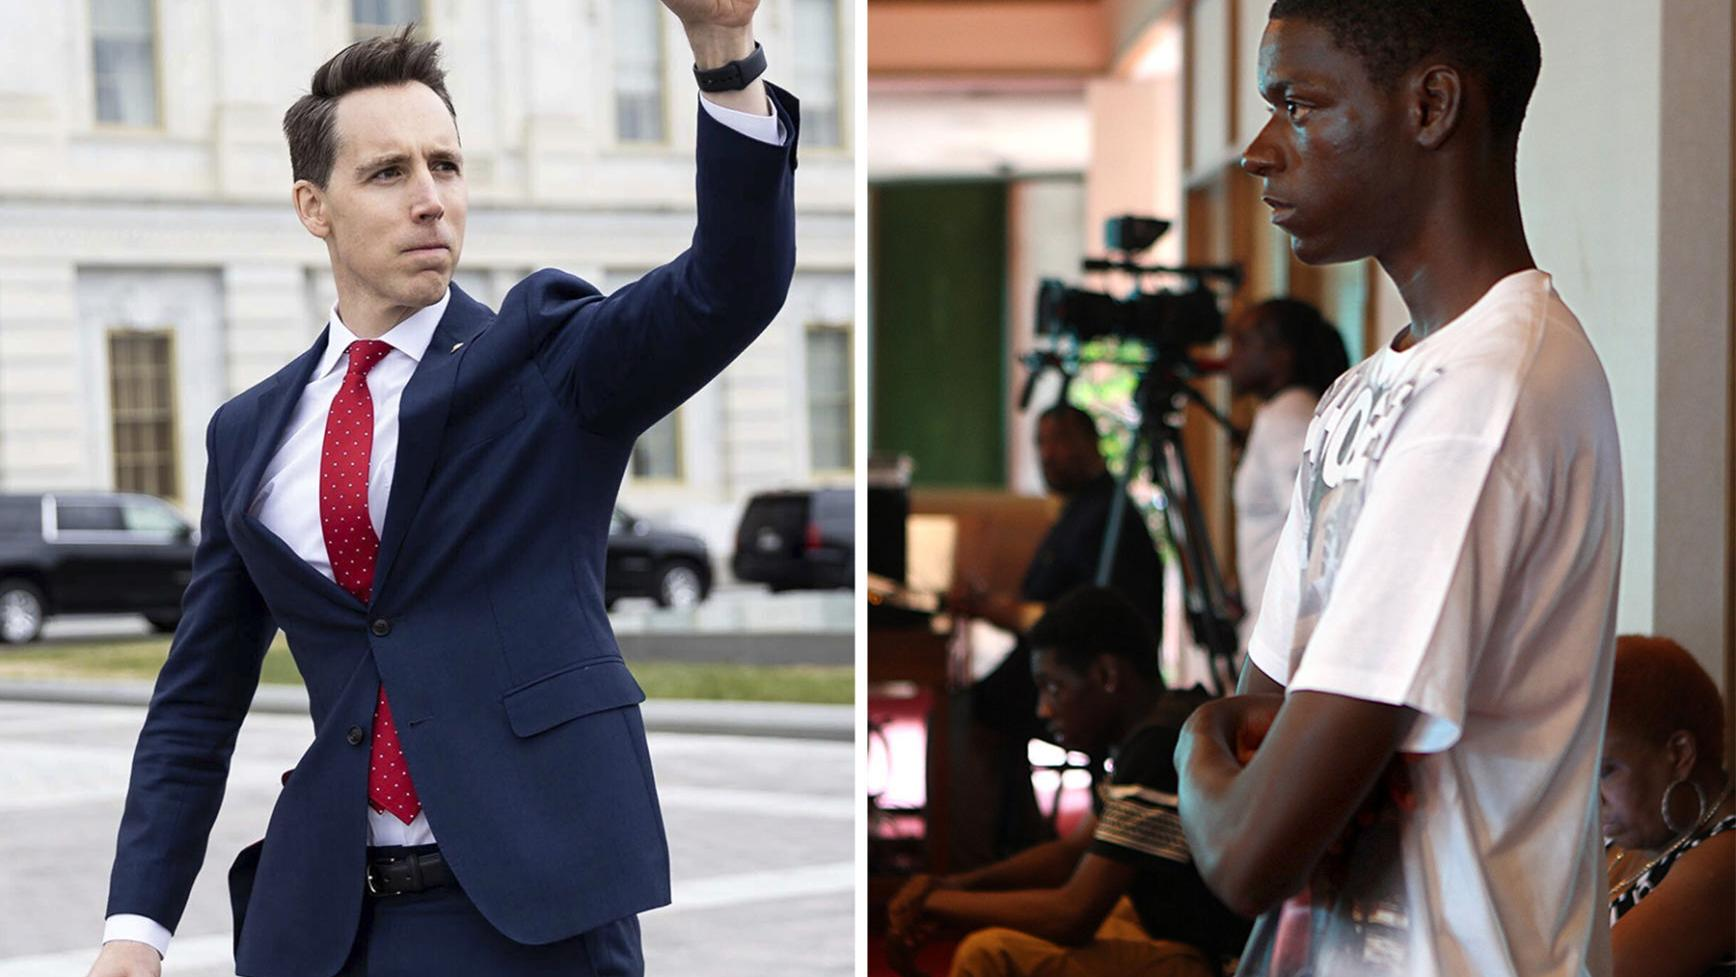 Antonio French: A clear double standard is at play in the treatment of Black, white protesters